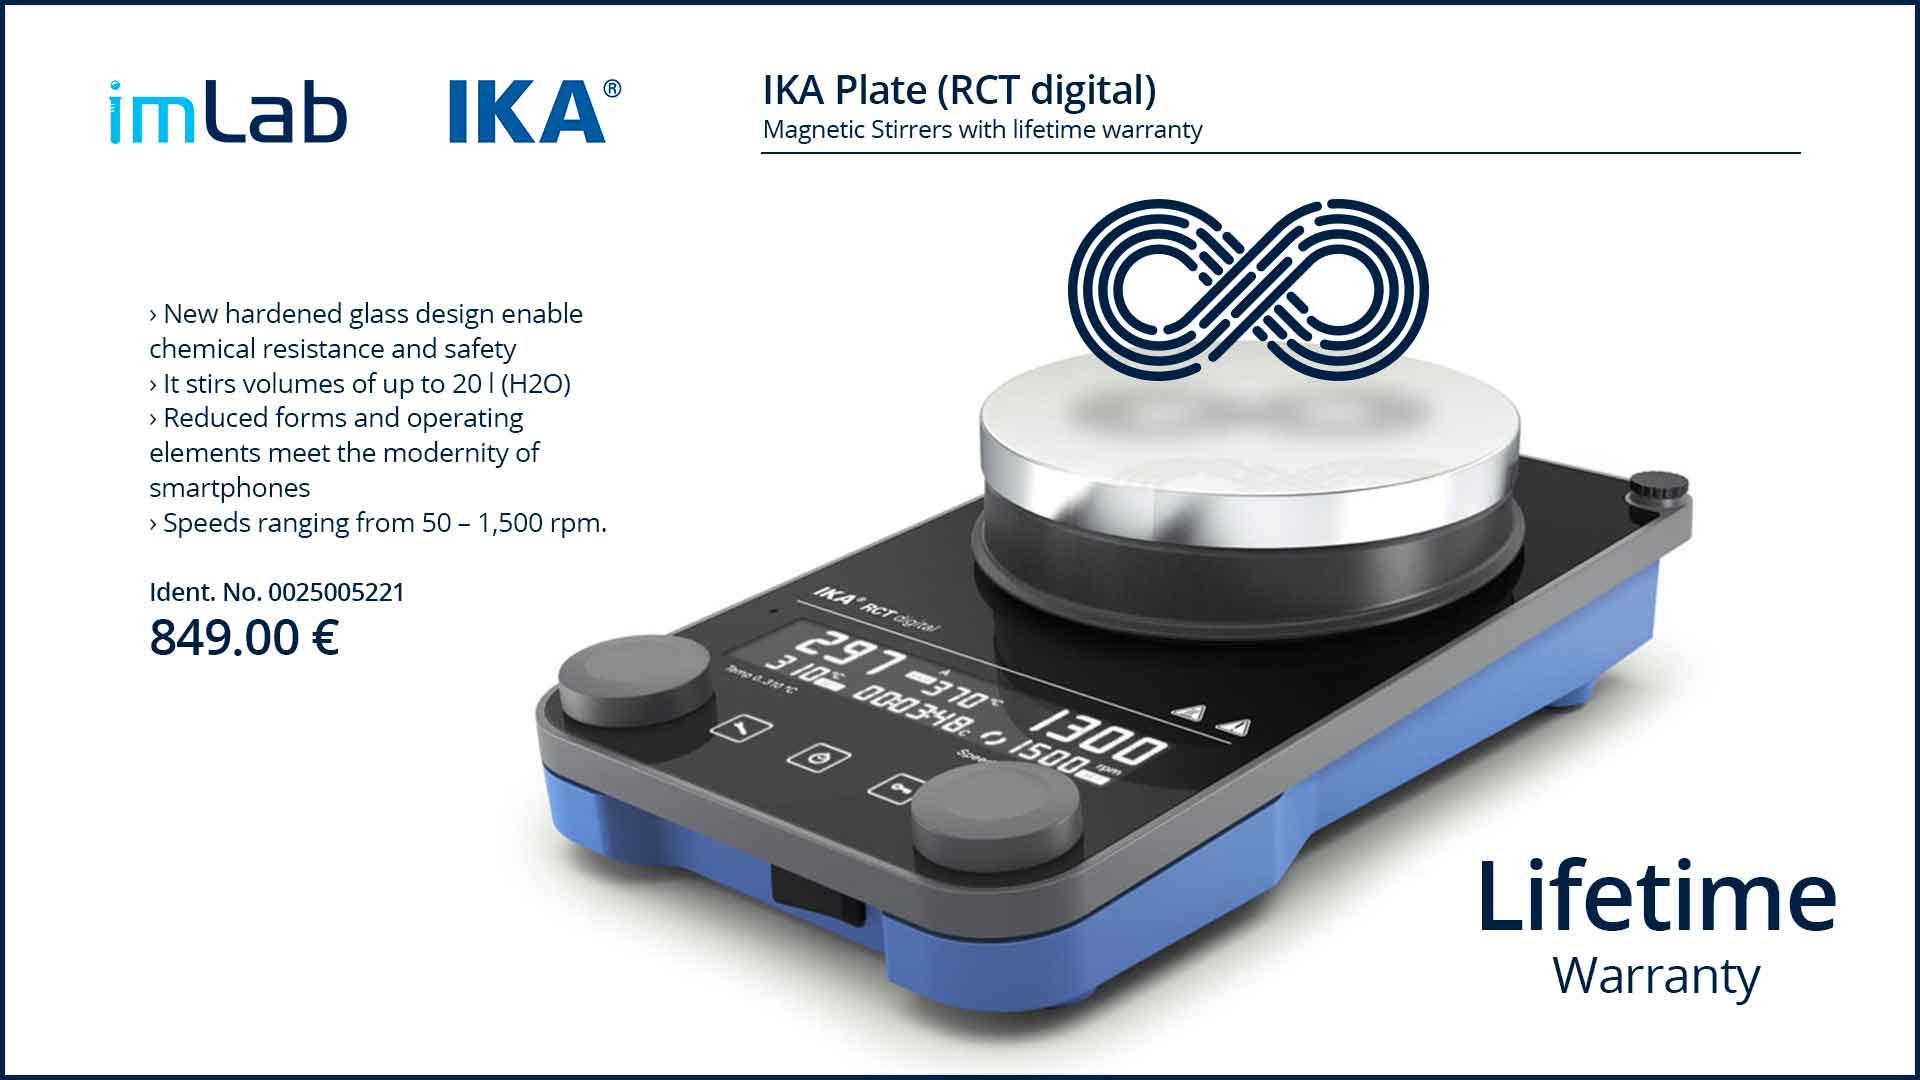 Ika promotion PLATE RCT DIGITAL imlab